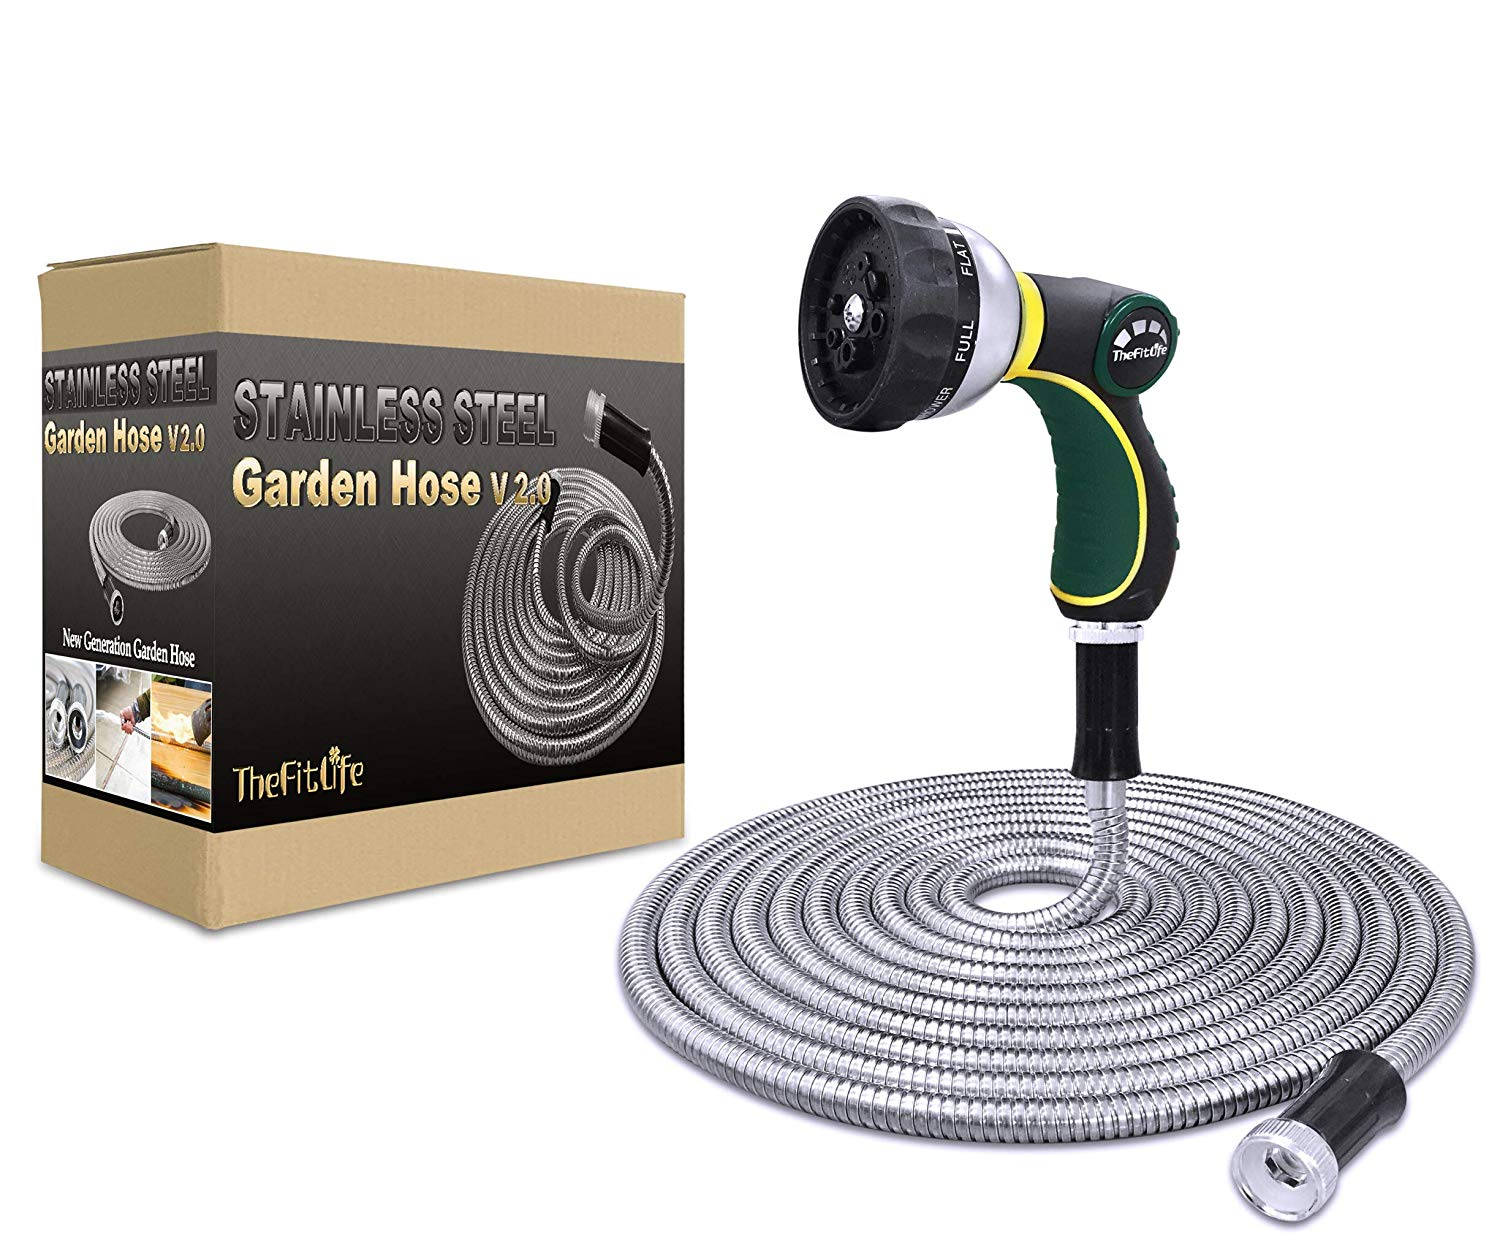 TheFitLife Flexible Metal Garden Hose